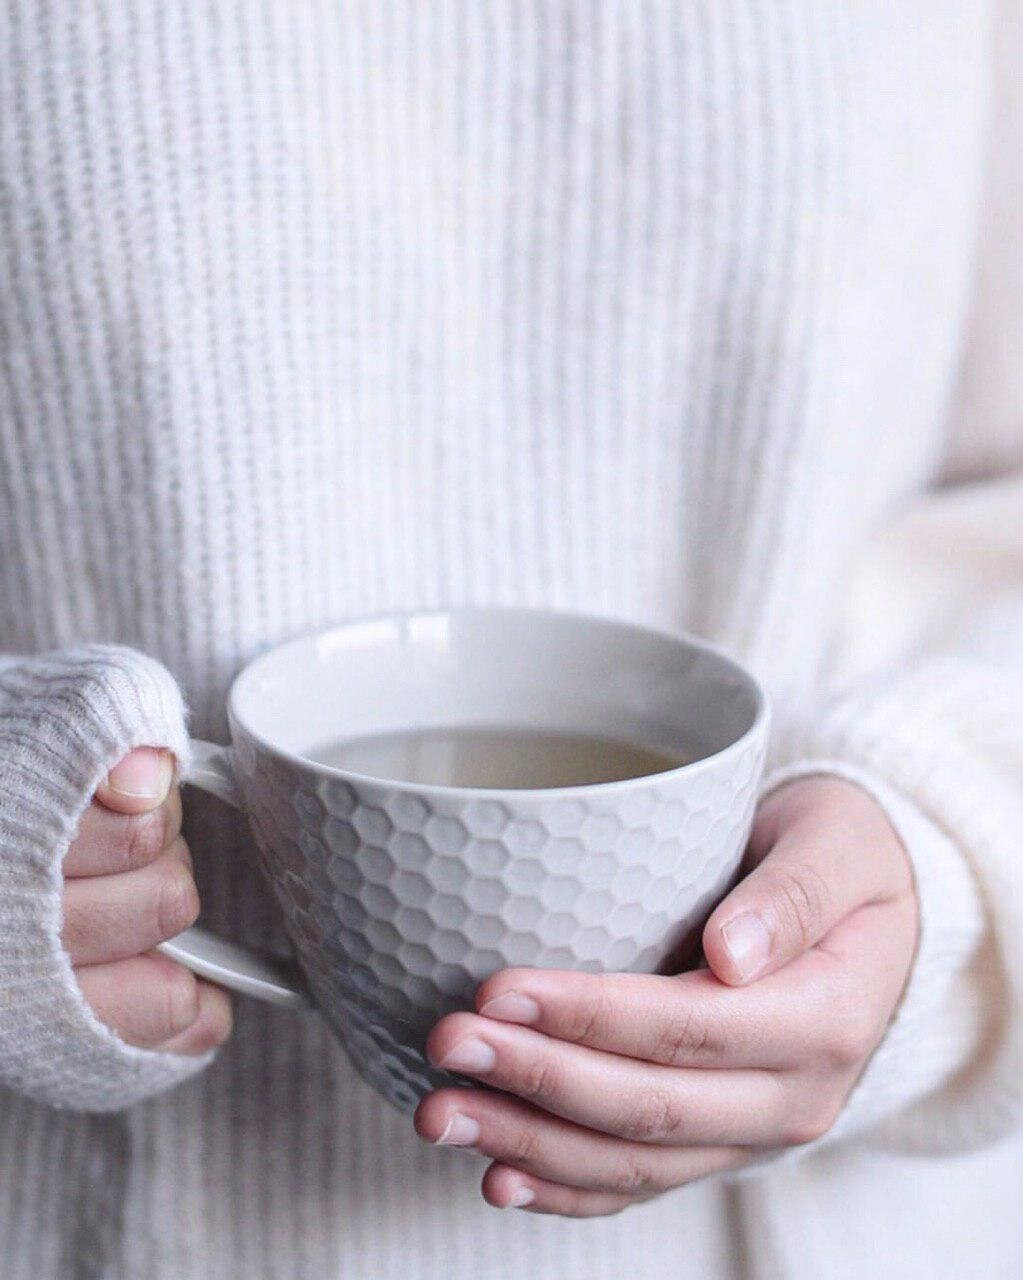 DRINKING WHITE TEA IS SUSTAINABLE - It is easy to drink and it is also not expensive (if you compare it to the cost of acquiring a metabolic disease). It can also be easily incorporated into one's lifestyle